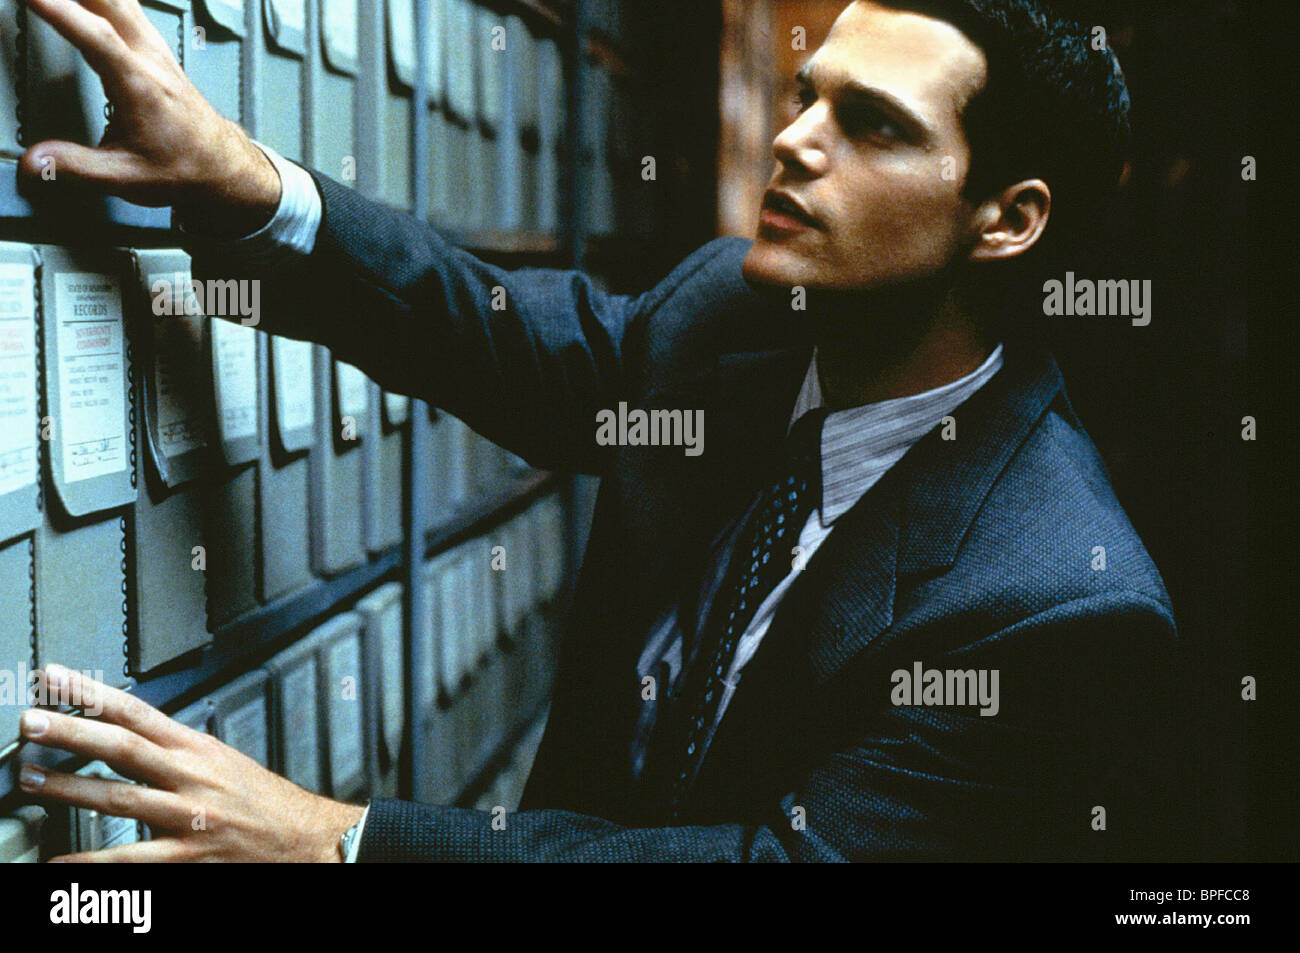 CHRIS O'DONNELL THE CHAMBER (1996) - Stock Image